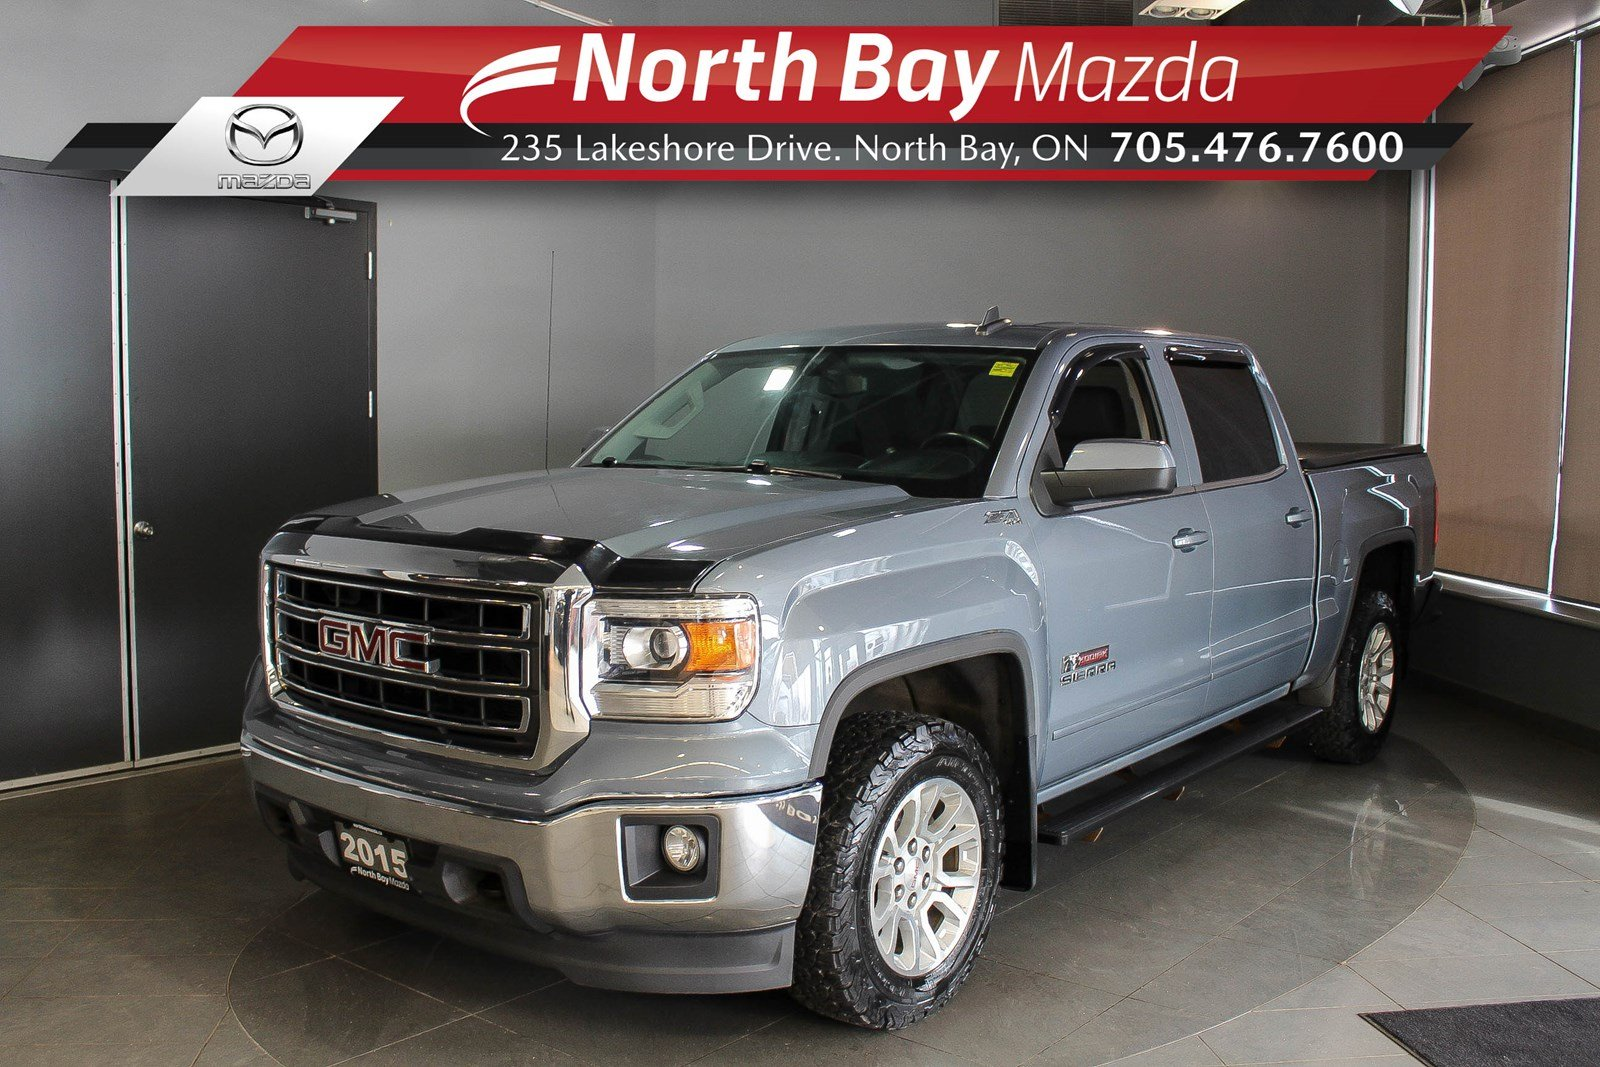 Pre-Owned 2015 GMC Sierra 1500 SLE - Virtual Tour & Curbside Delivery Available!